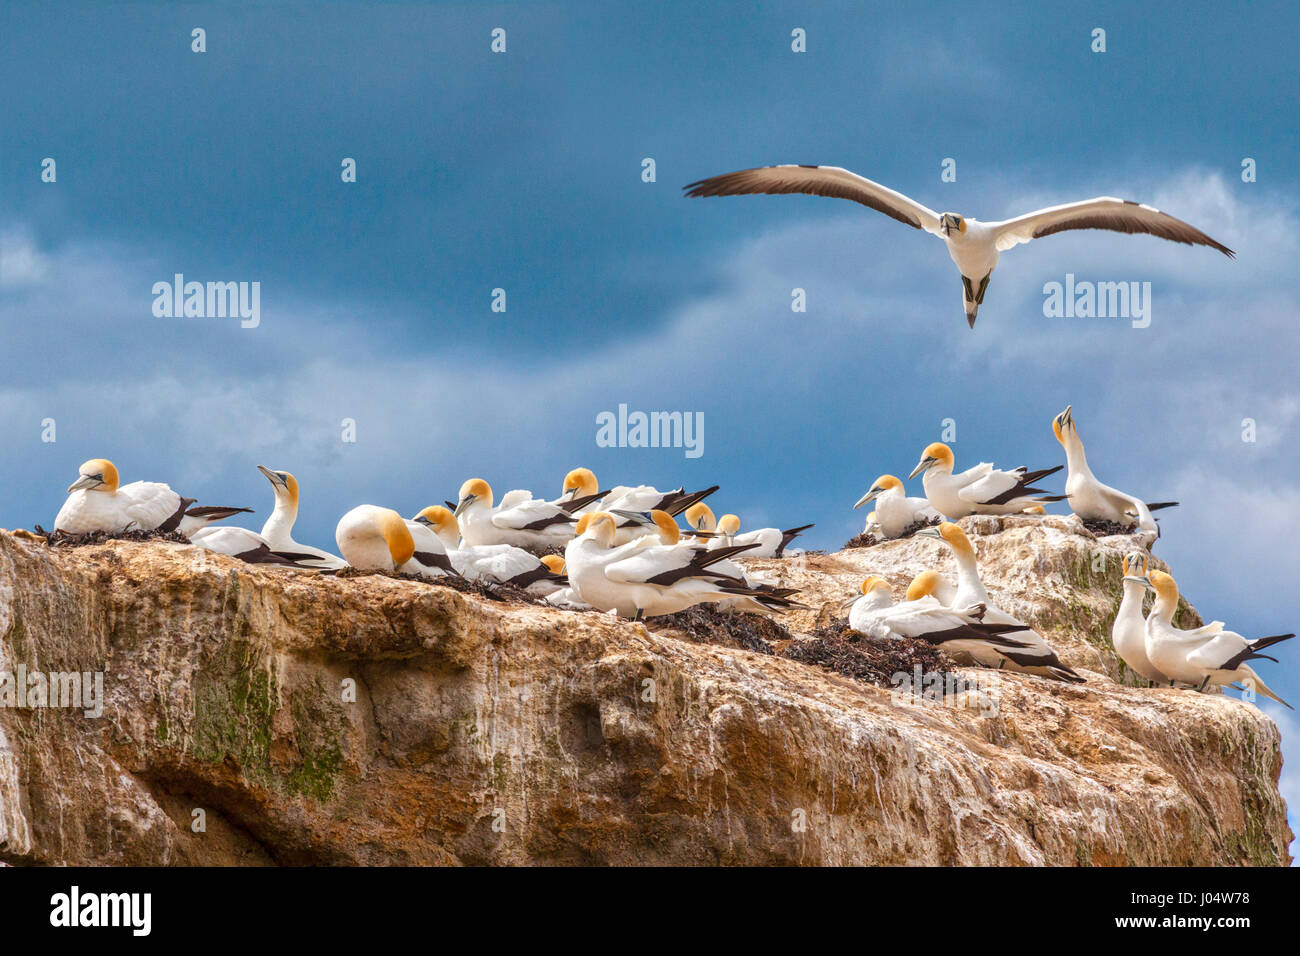 Black Reef Gannet Colony, Cape Kidnappers, Hawkes Bay, New Zealand. - Stock Image